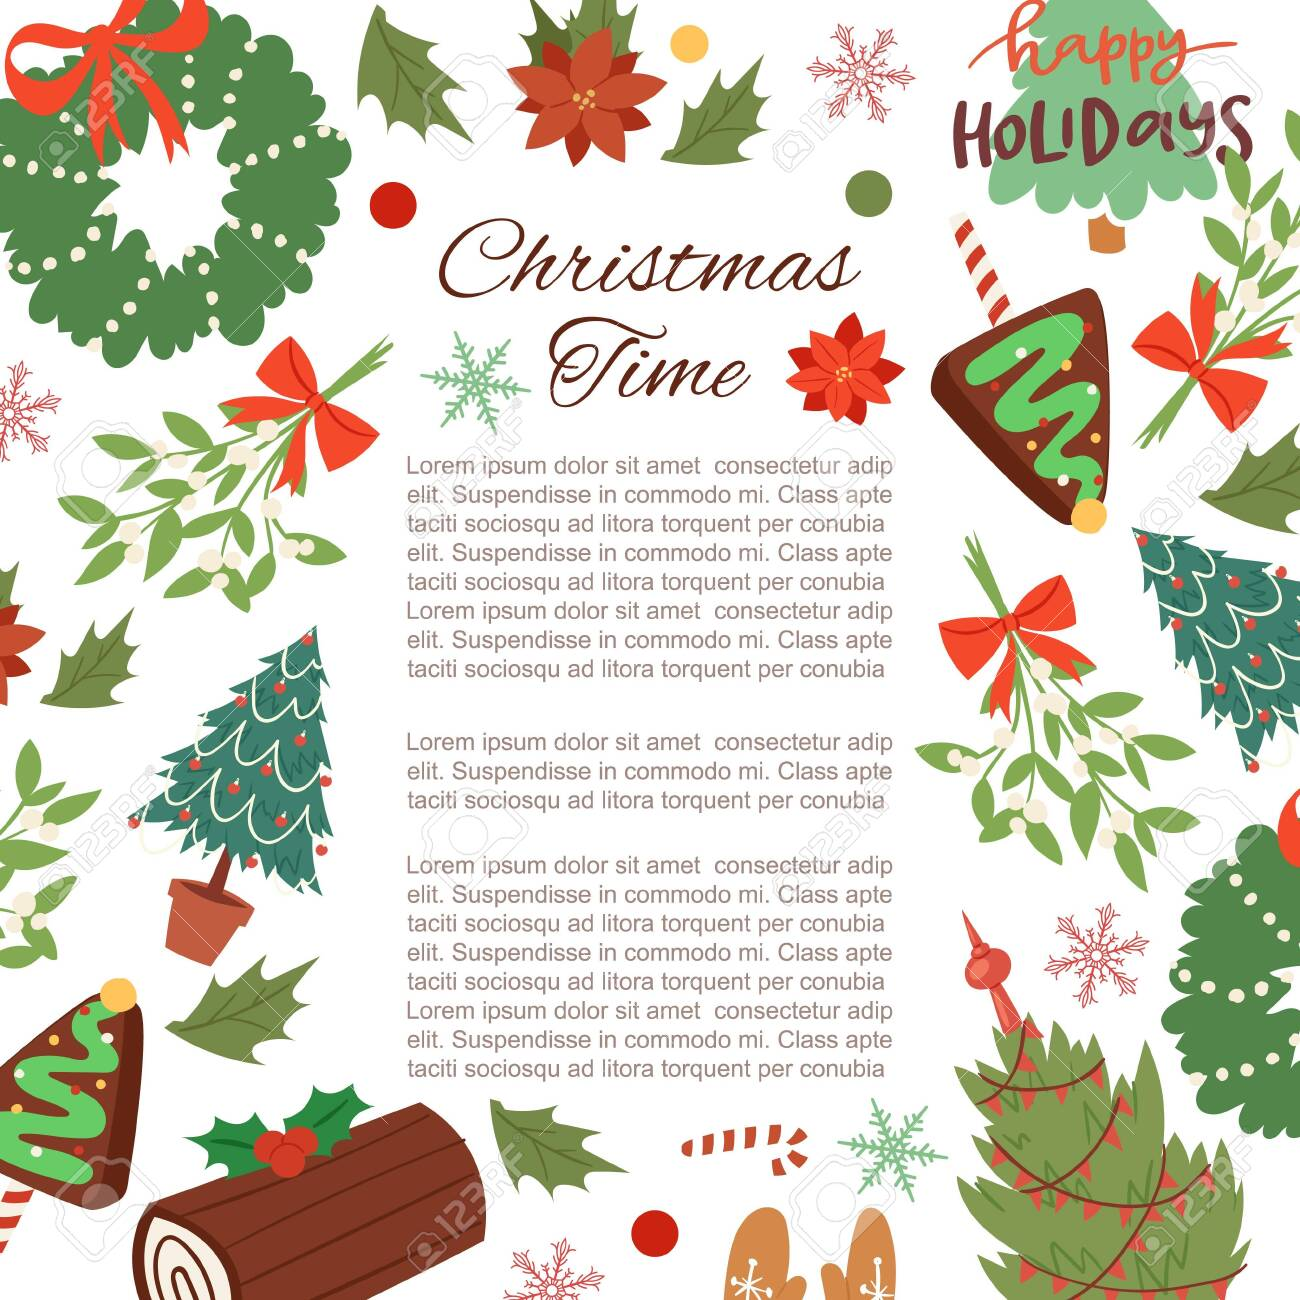 Christmas frame cartoon vector illustration. Winter holidays background with pine branches, berries, holly and mistletoe wreath with ribbons and fir trees. Botanical christmas frame with typography. - 133832695